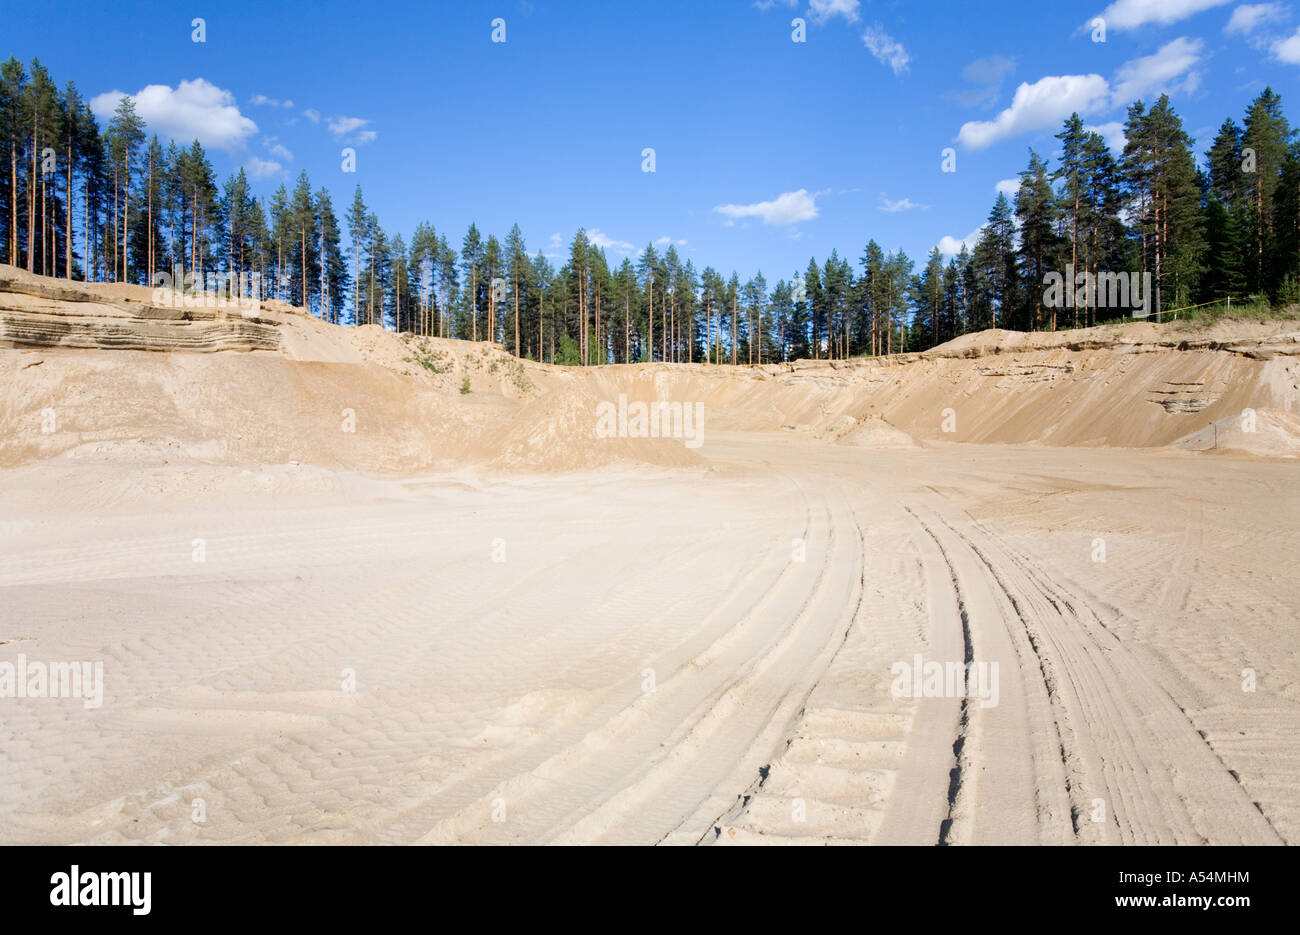 Fine sand in a sandpit on a sandy ridge / esker  , Finland - Stock Image